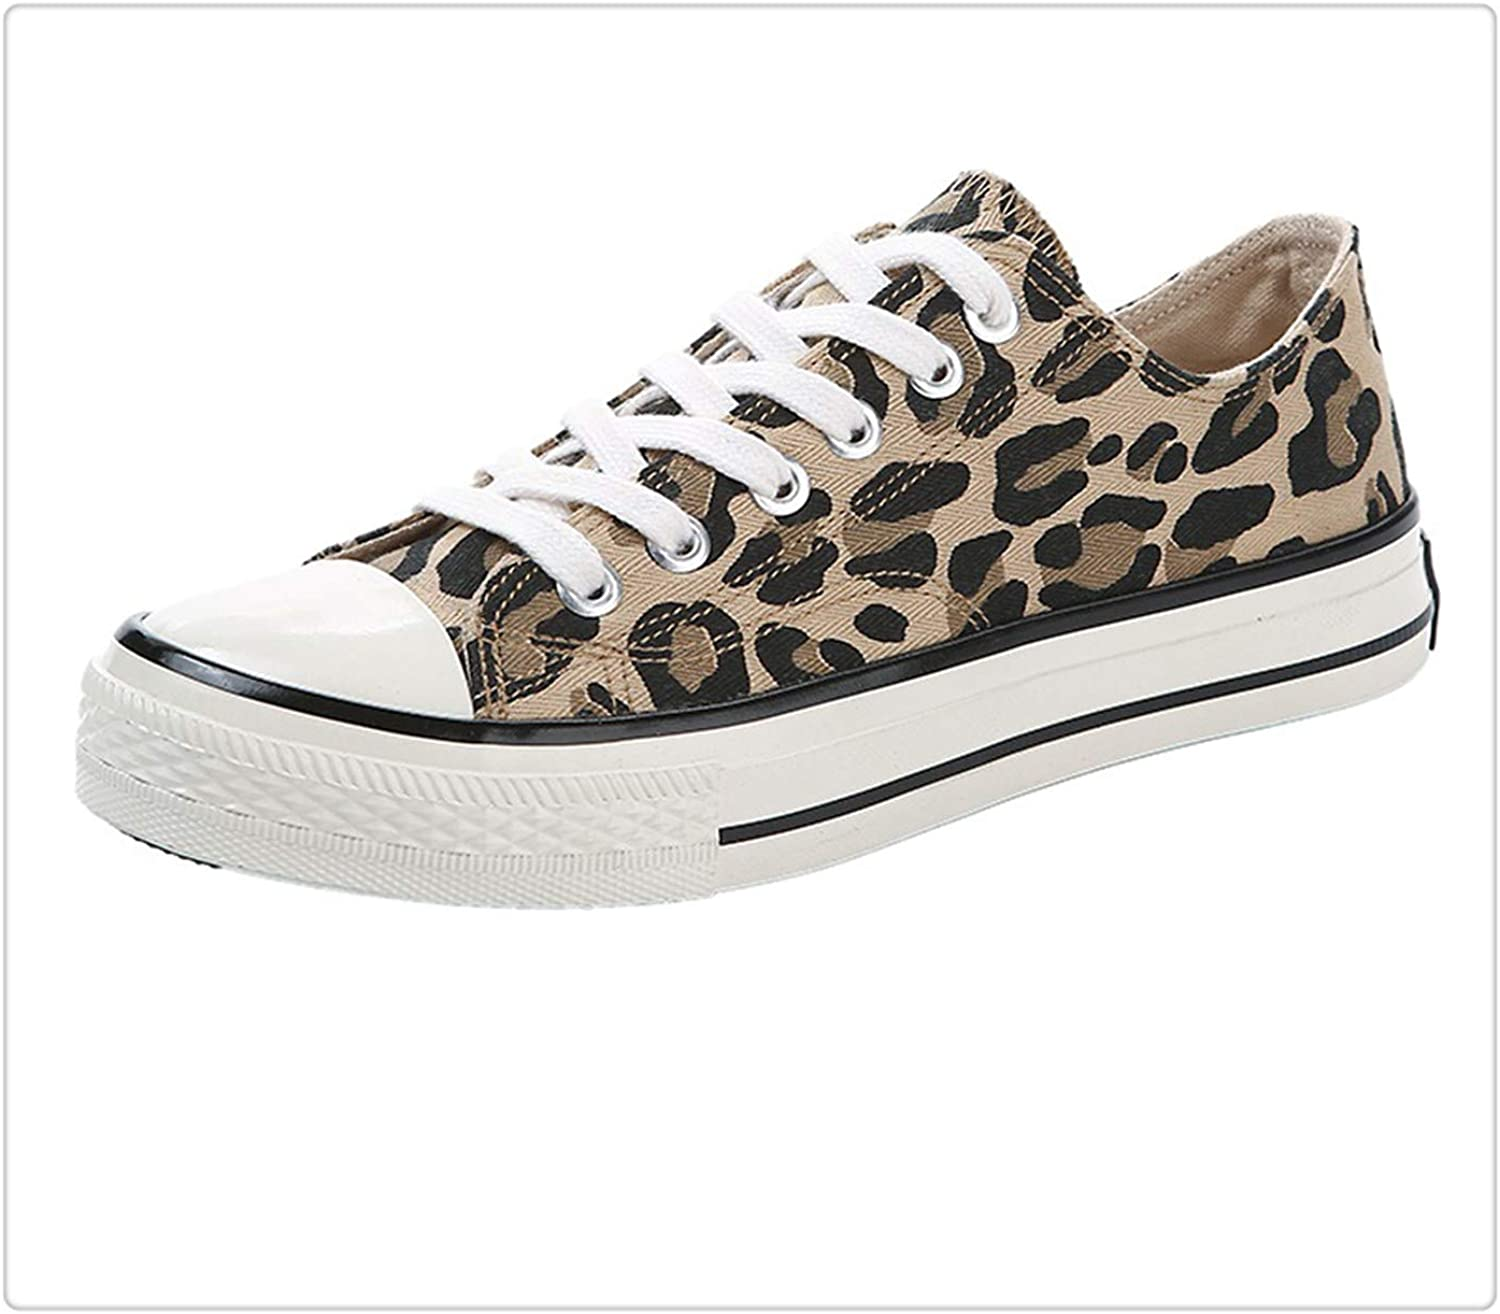 QUGKOP& Fashion Leopard shoes Women shoes Casual Canvas shoes Women Sneakers High-top